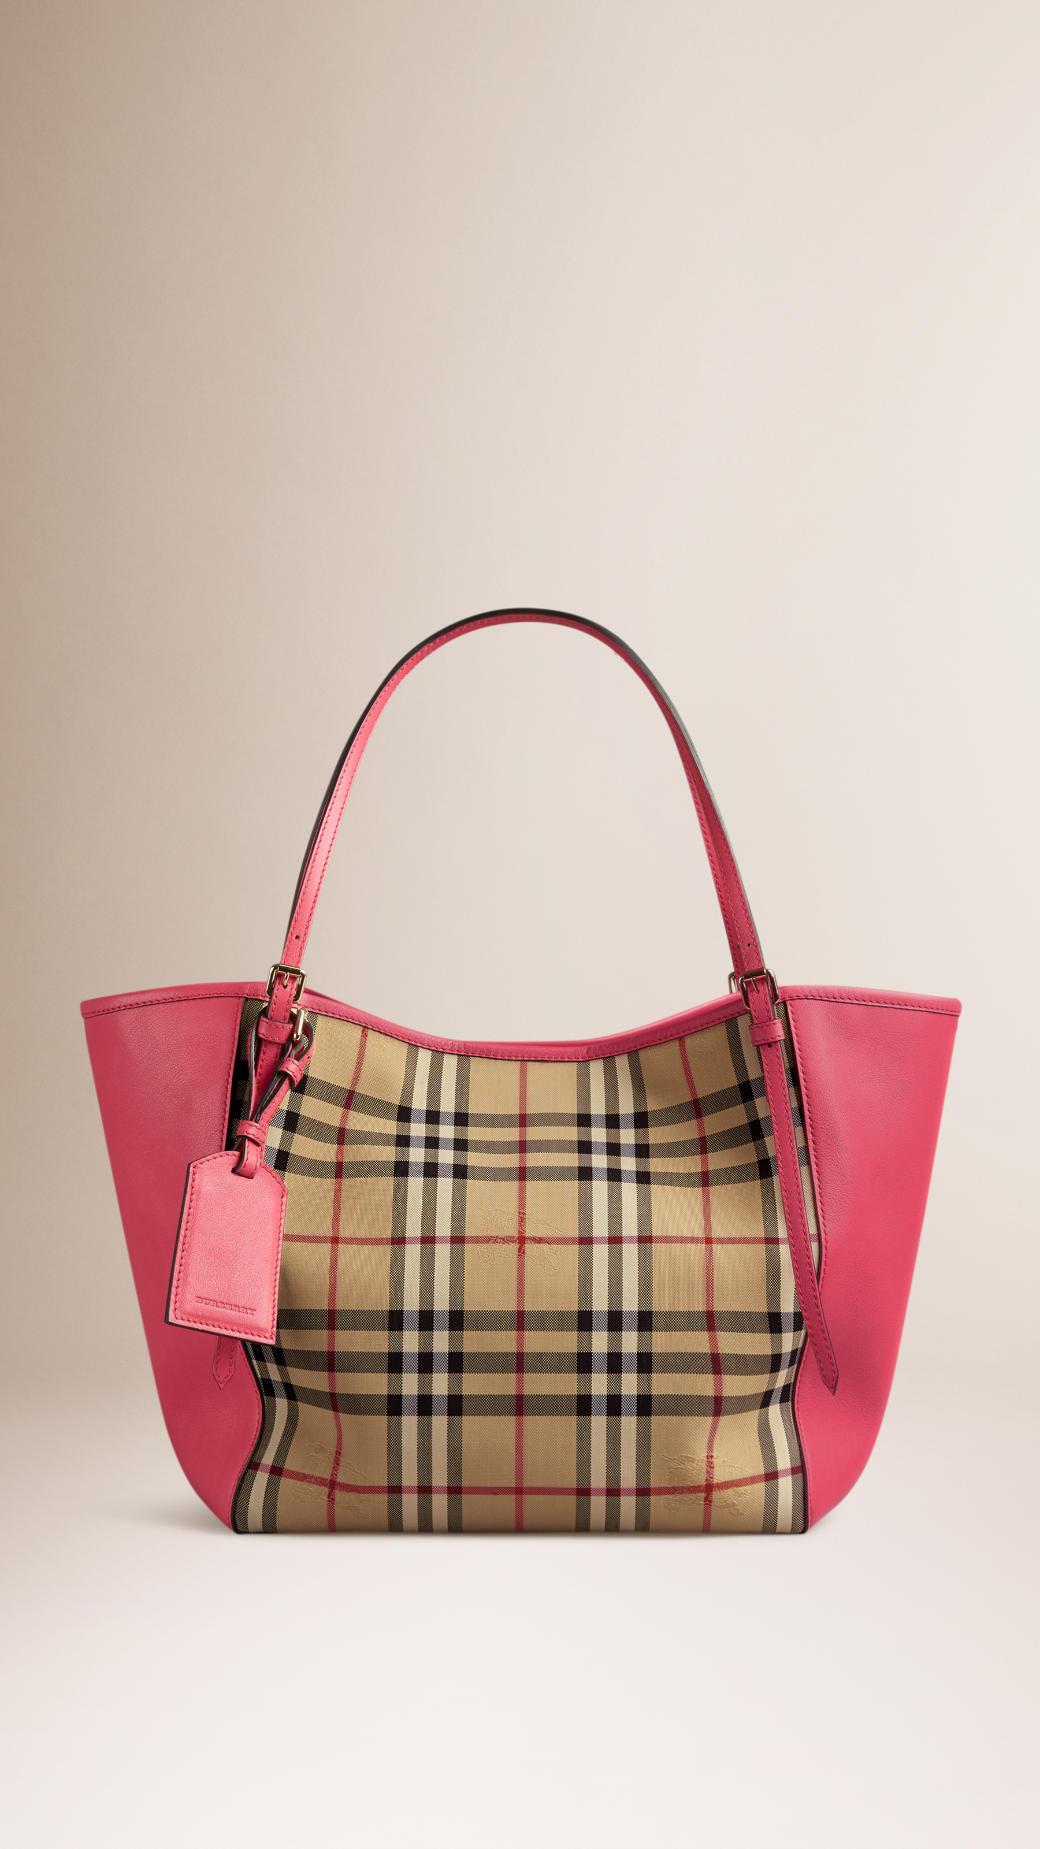 6e1e7f54d16d Burberry The Small Canter In Horseferry Check And Leather in Pink - Lyst